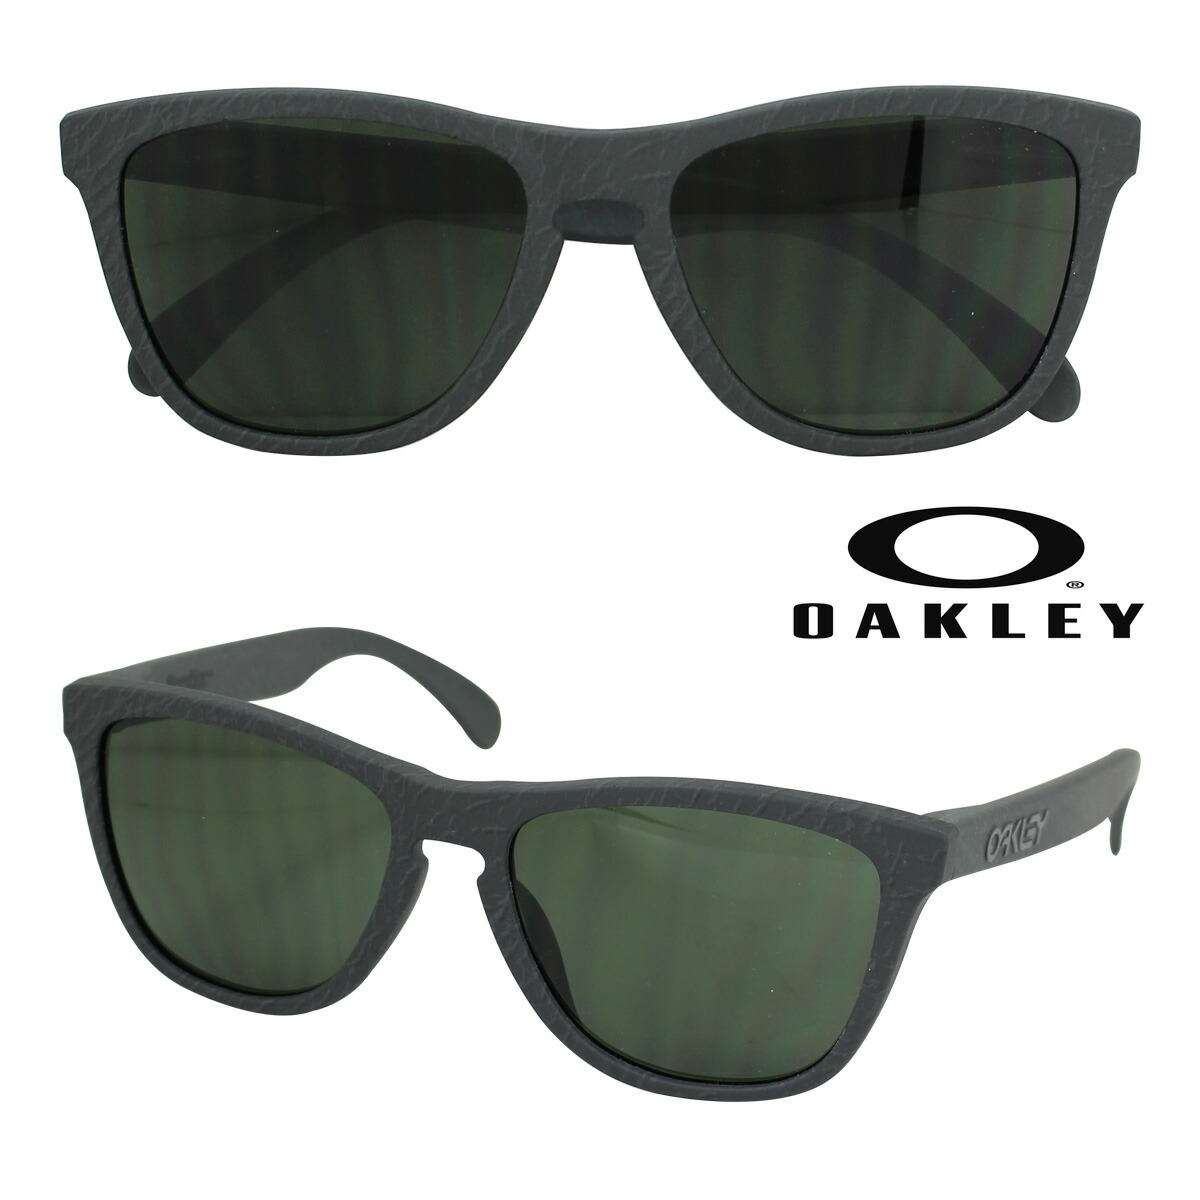 Oakley sunglasses asian fit - Oakley Oakley Sunglasses Frogskins Asian Fit Frog Skin Asian Fitting Oo9245 28 Chests Dark Grey Men S Women S